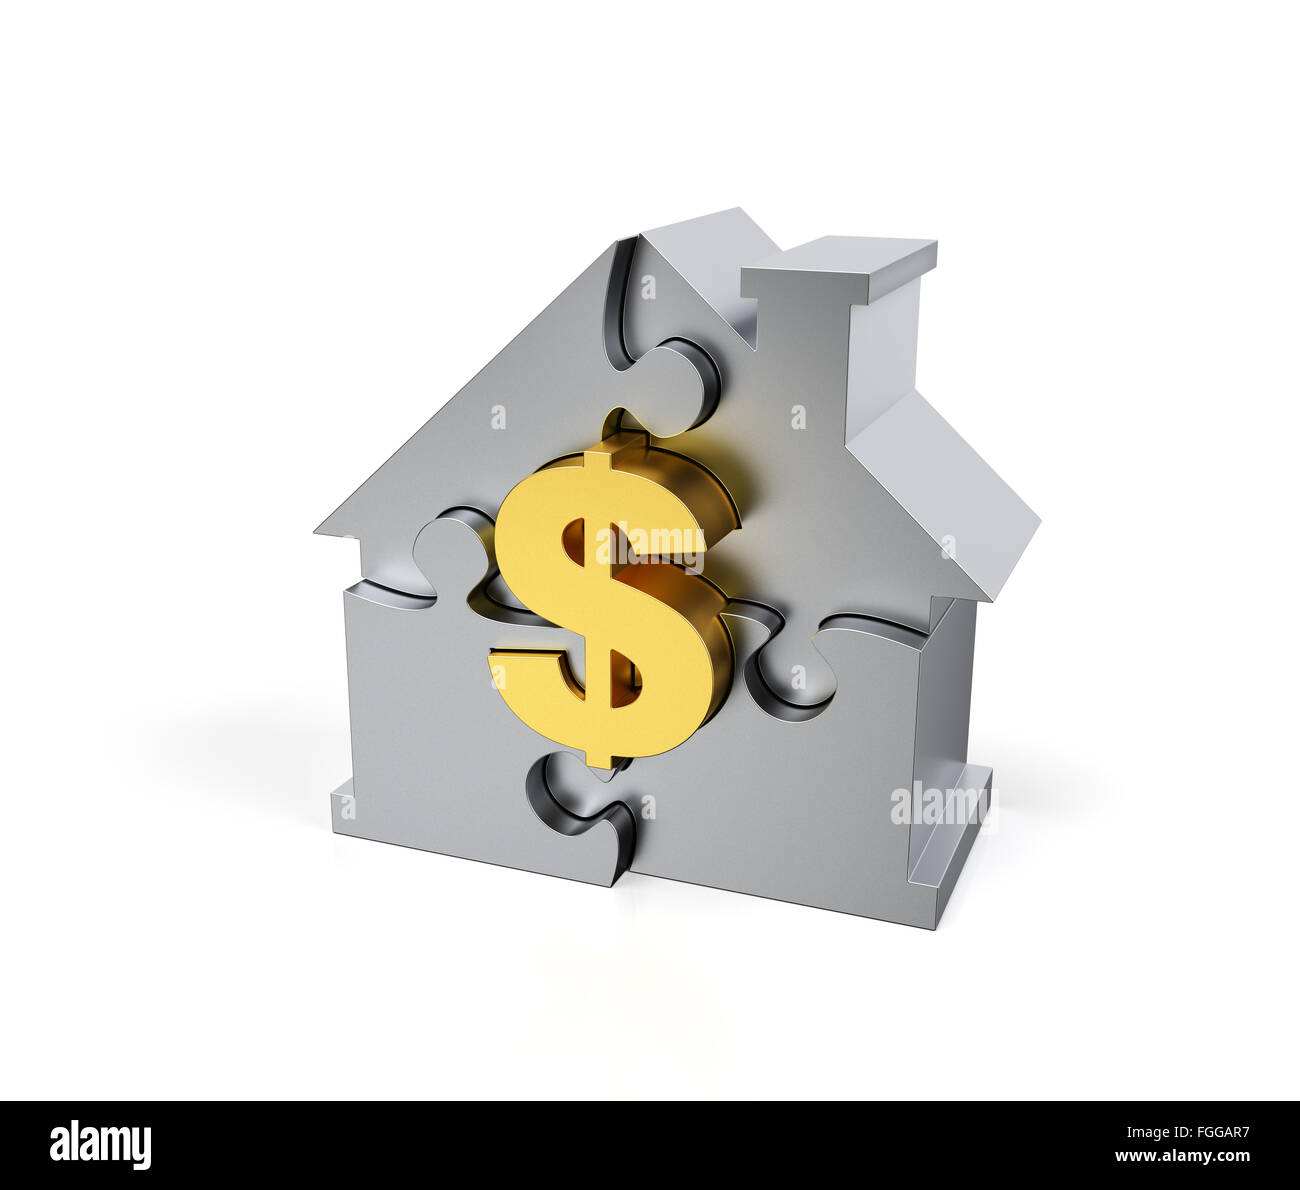 Steel Jigsaw Puzzle house with golden dollar sign - Stock Image